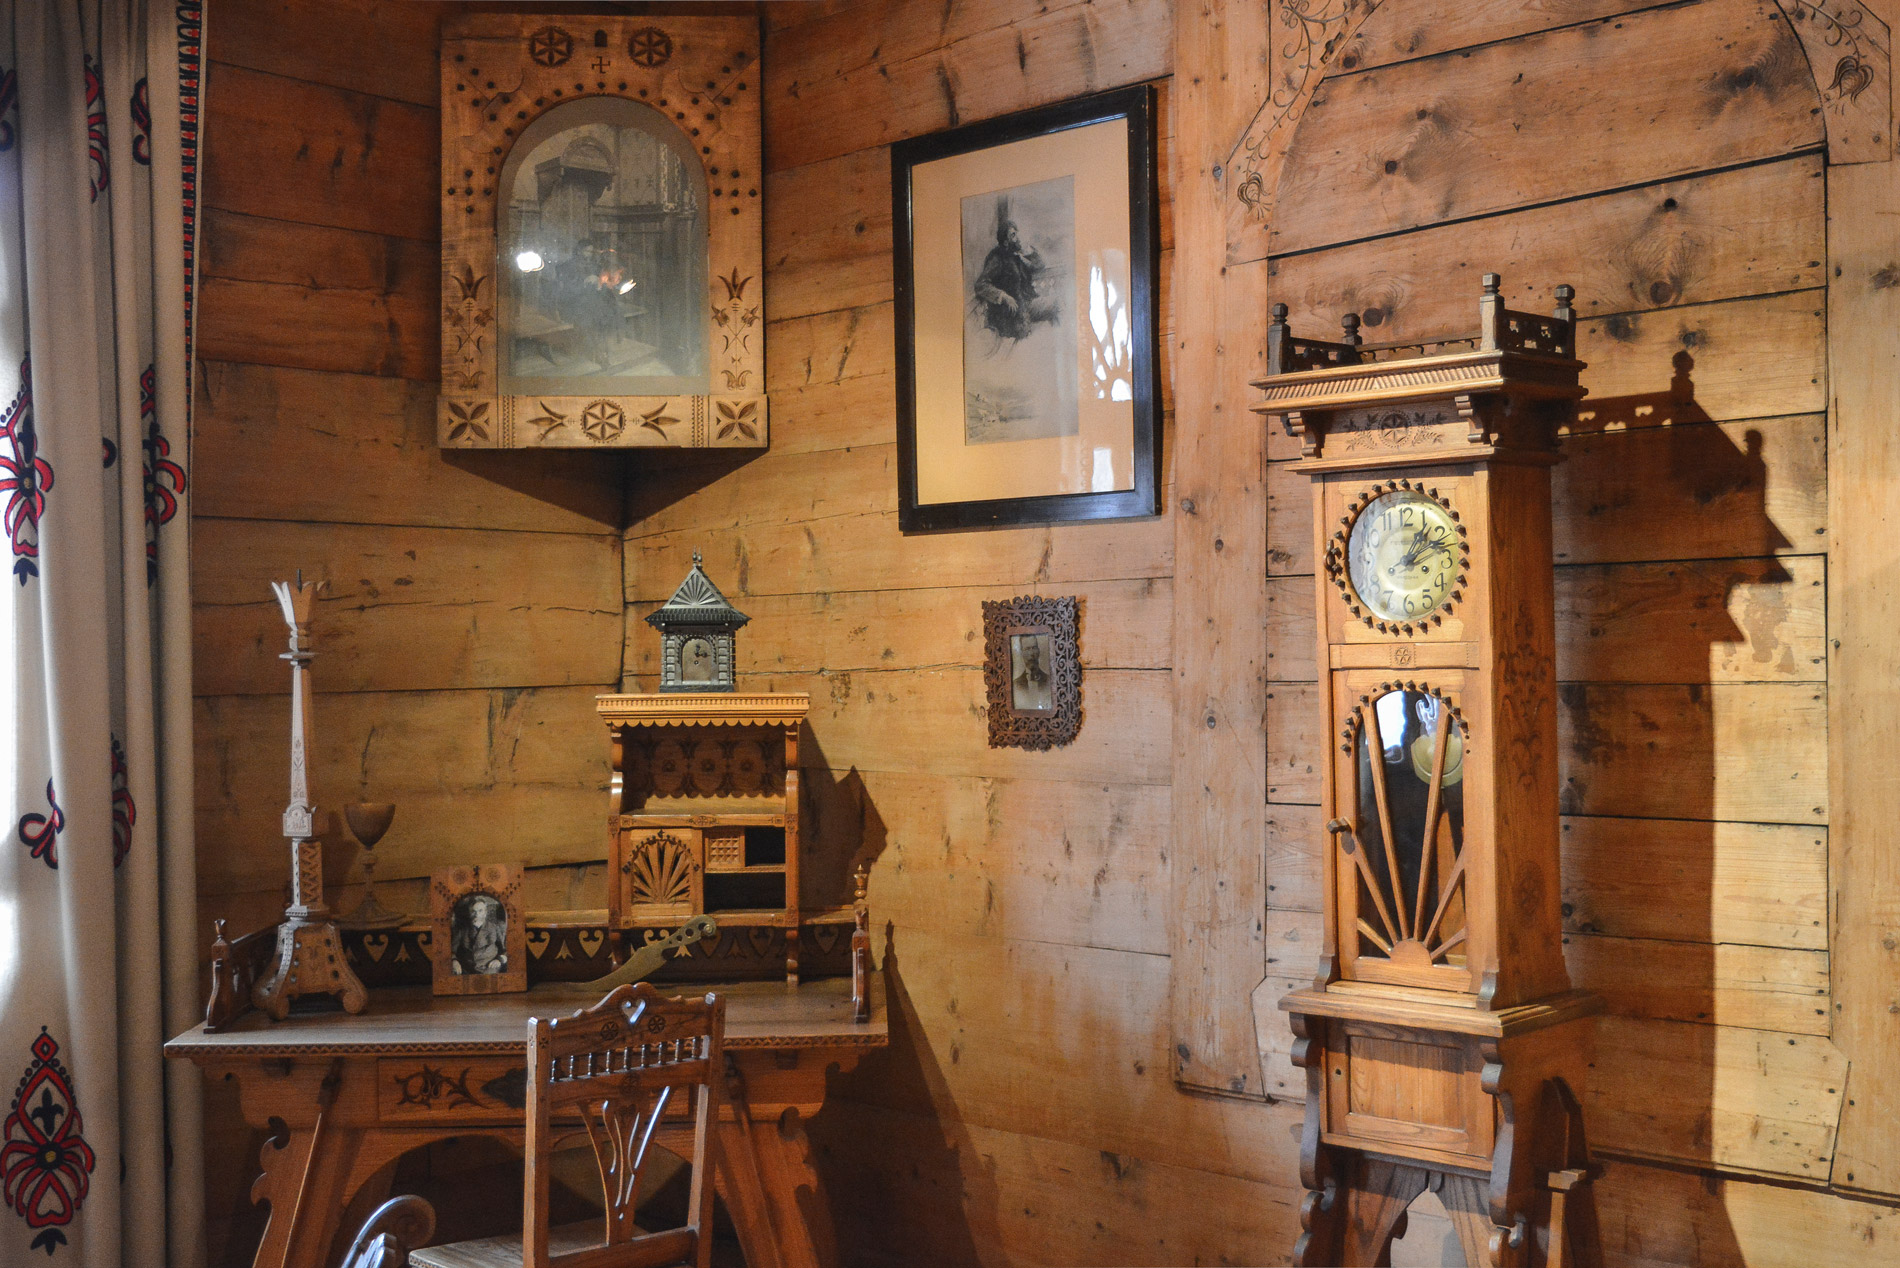 Inside of the Zakopane Style Museum you can find typical furniture